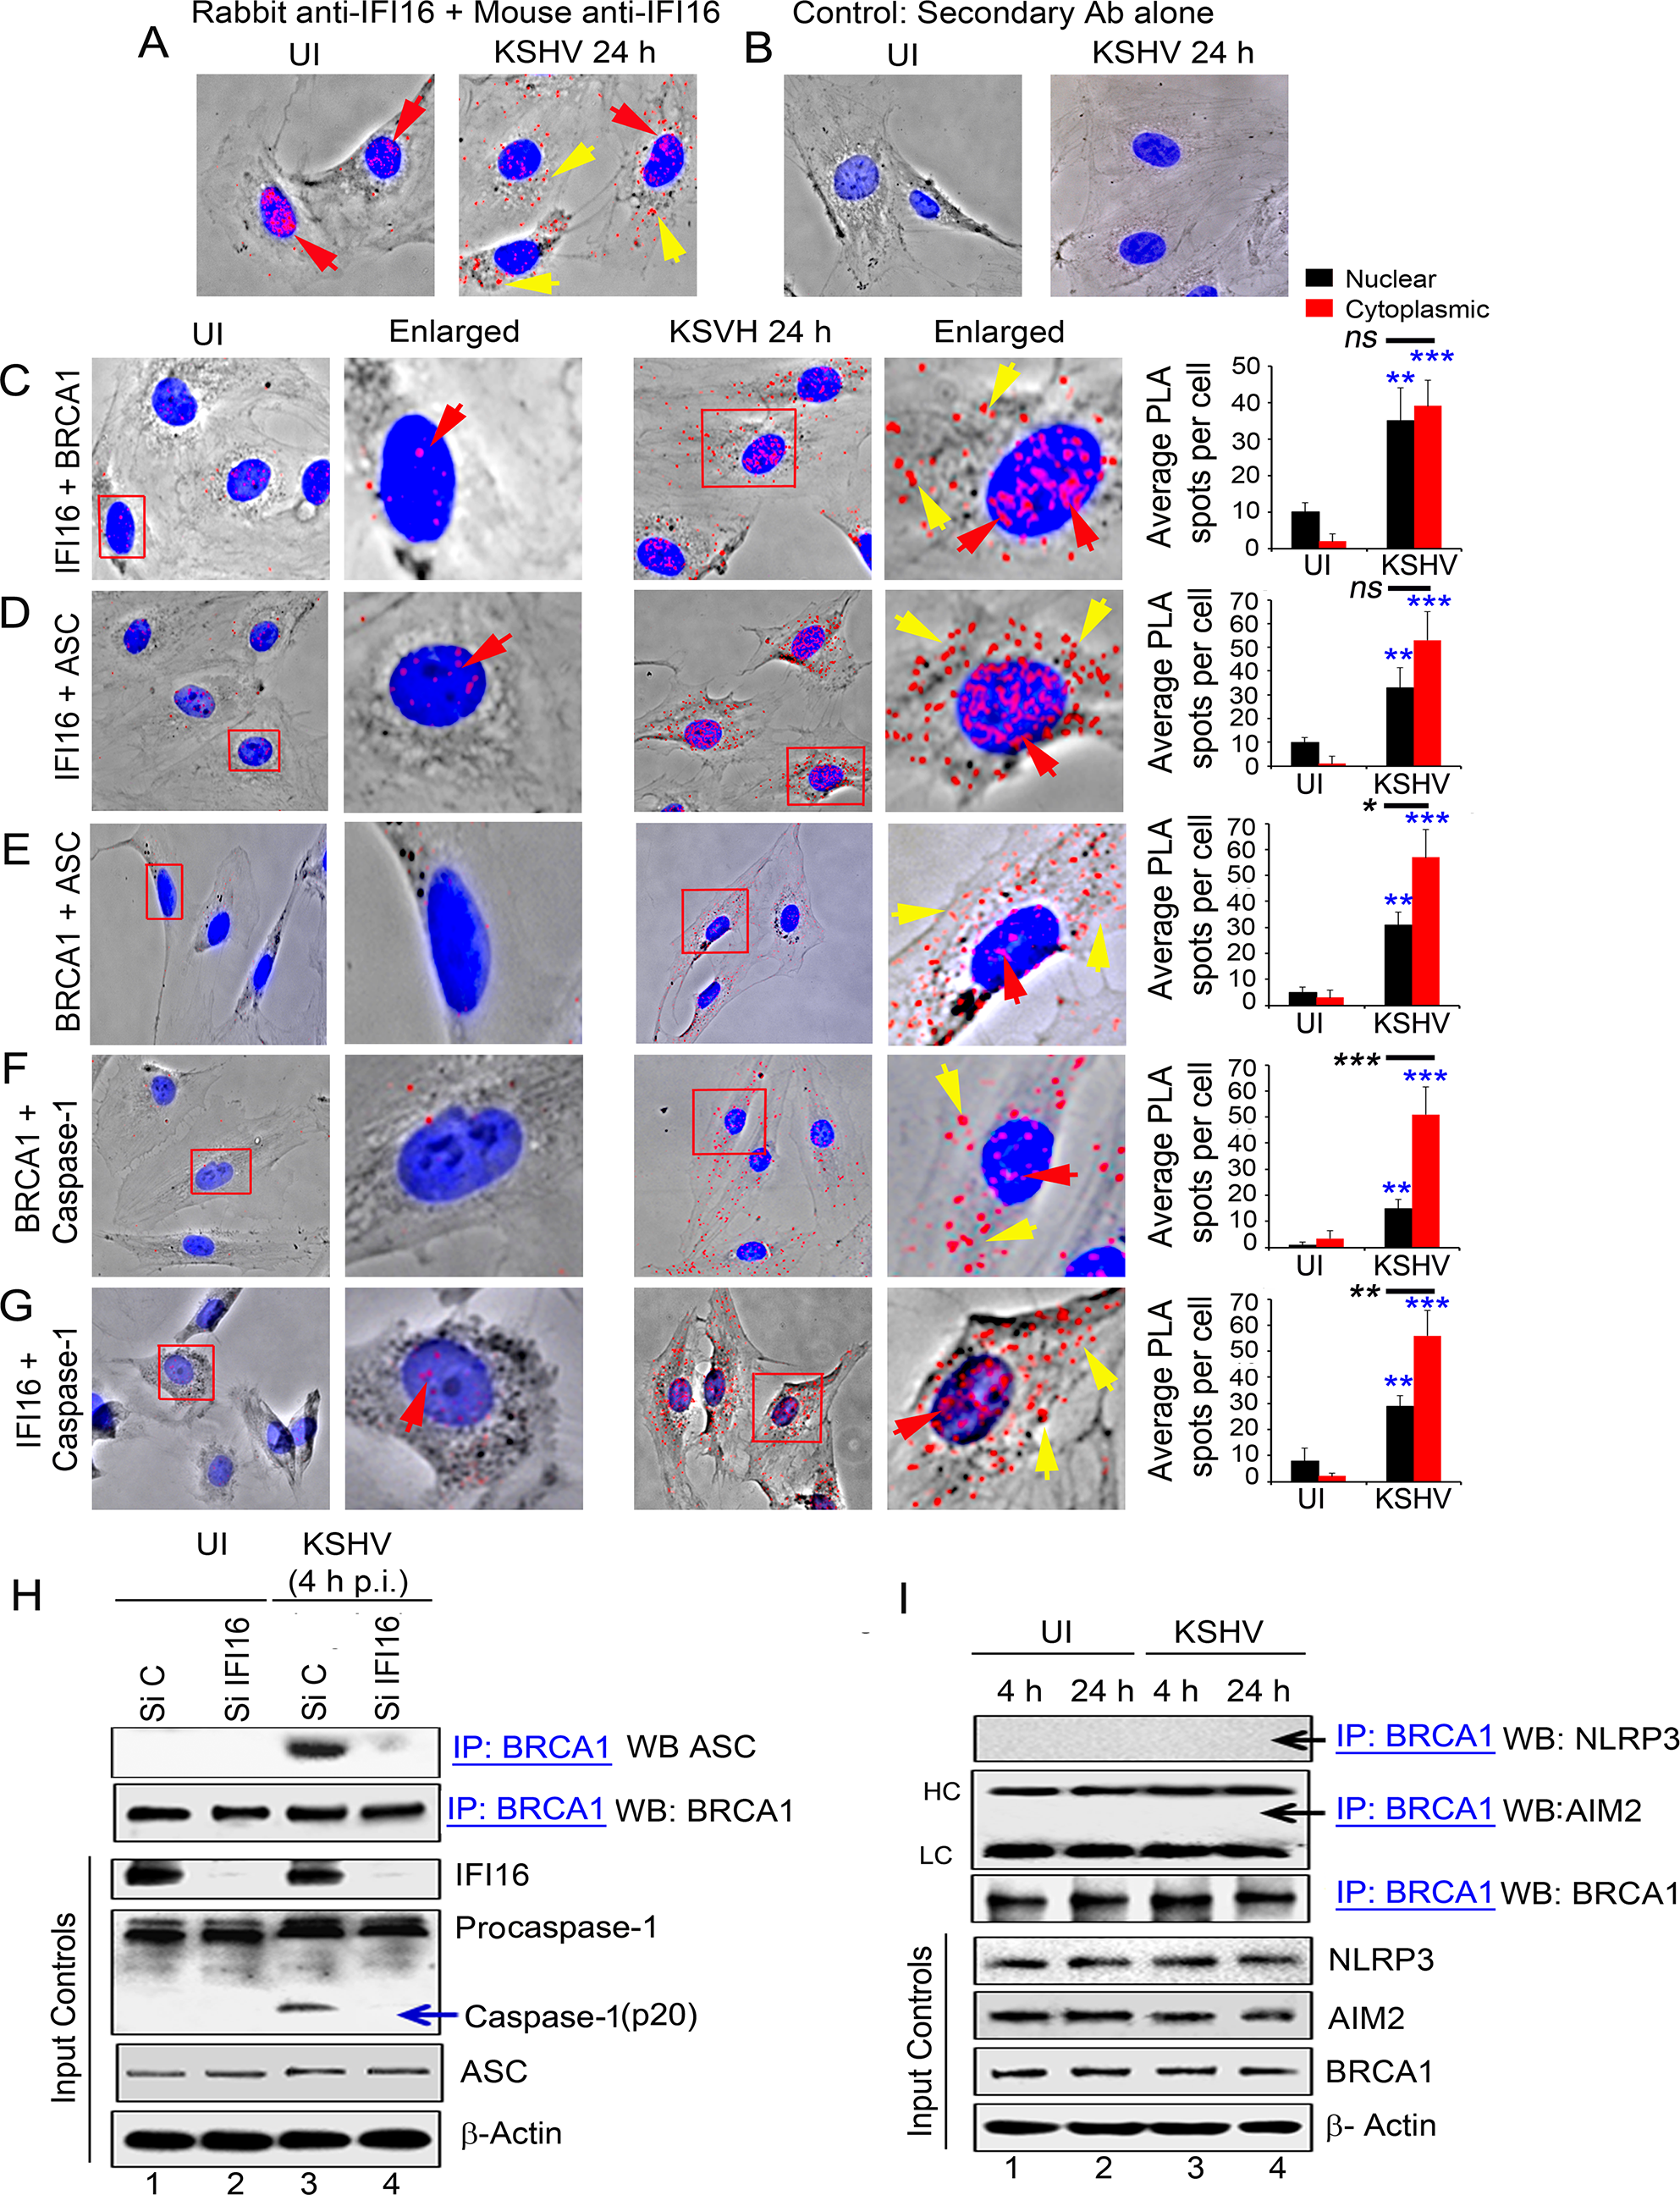 PLA and knockdown studies demonstrating specificity of BRCA1 interactions with IFI16-inflammasome components and relocalization to the cytoplasm during <i>de novo</i> KSHV infection.